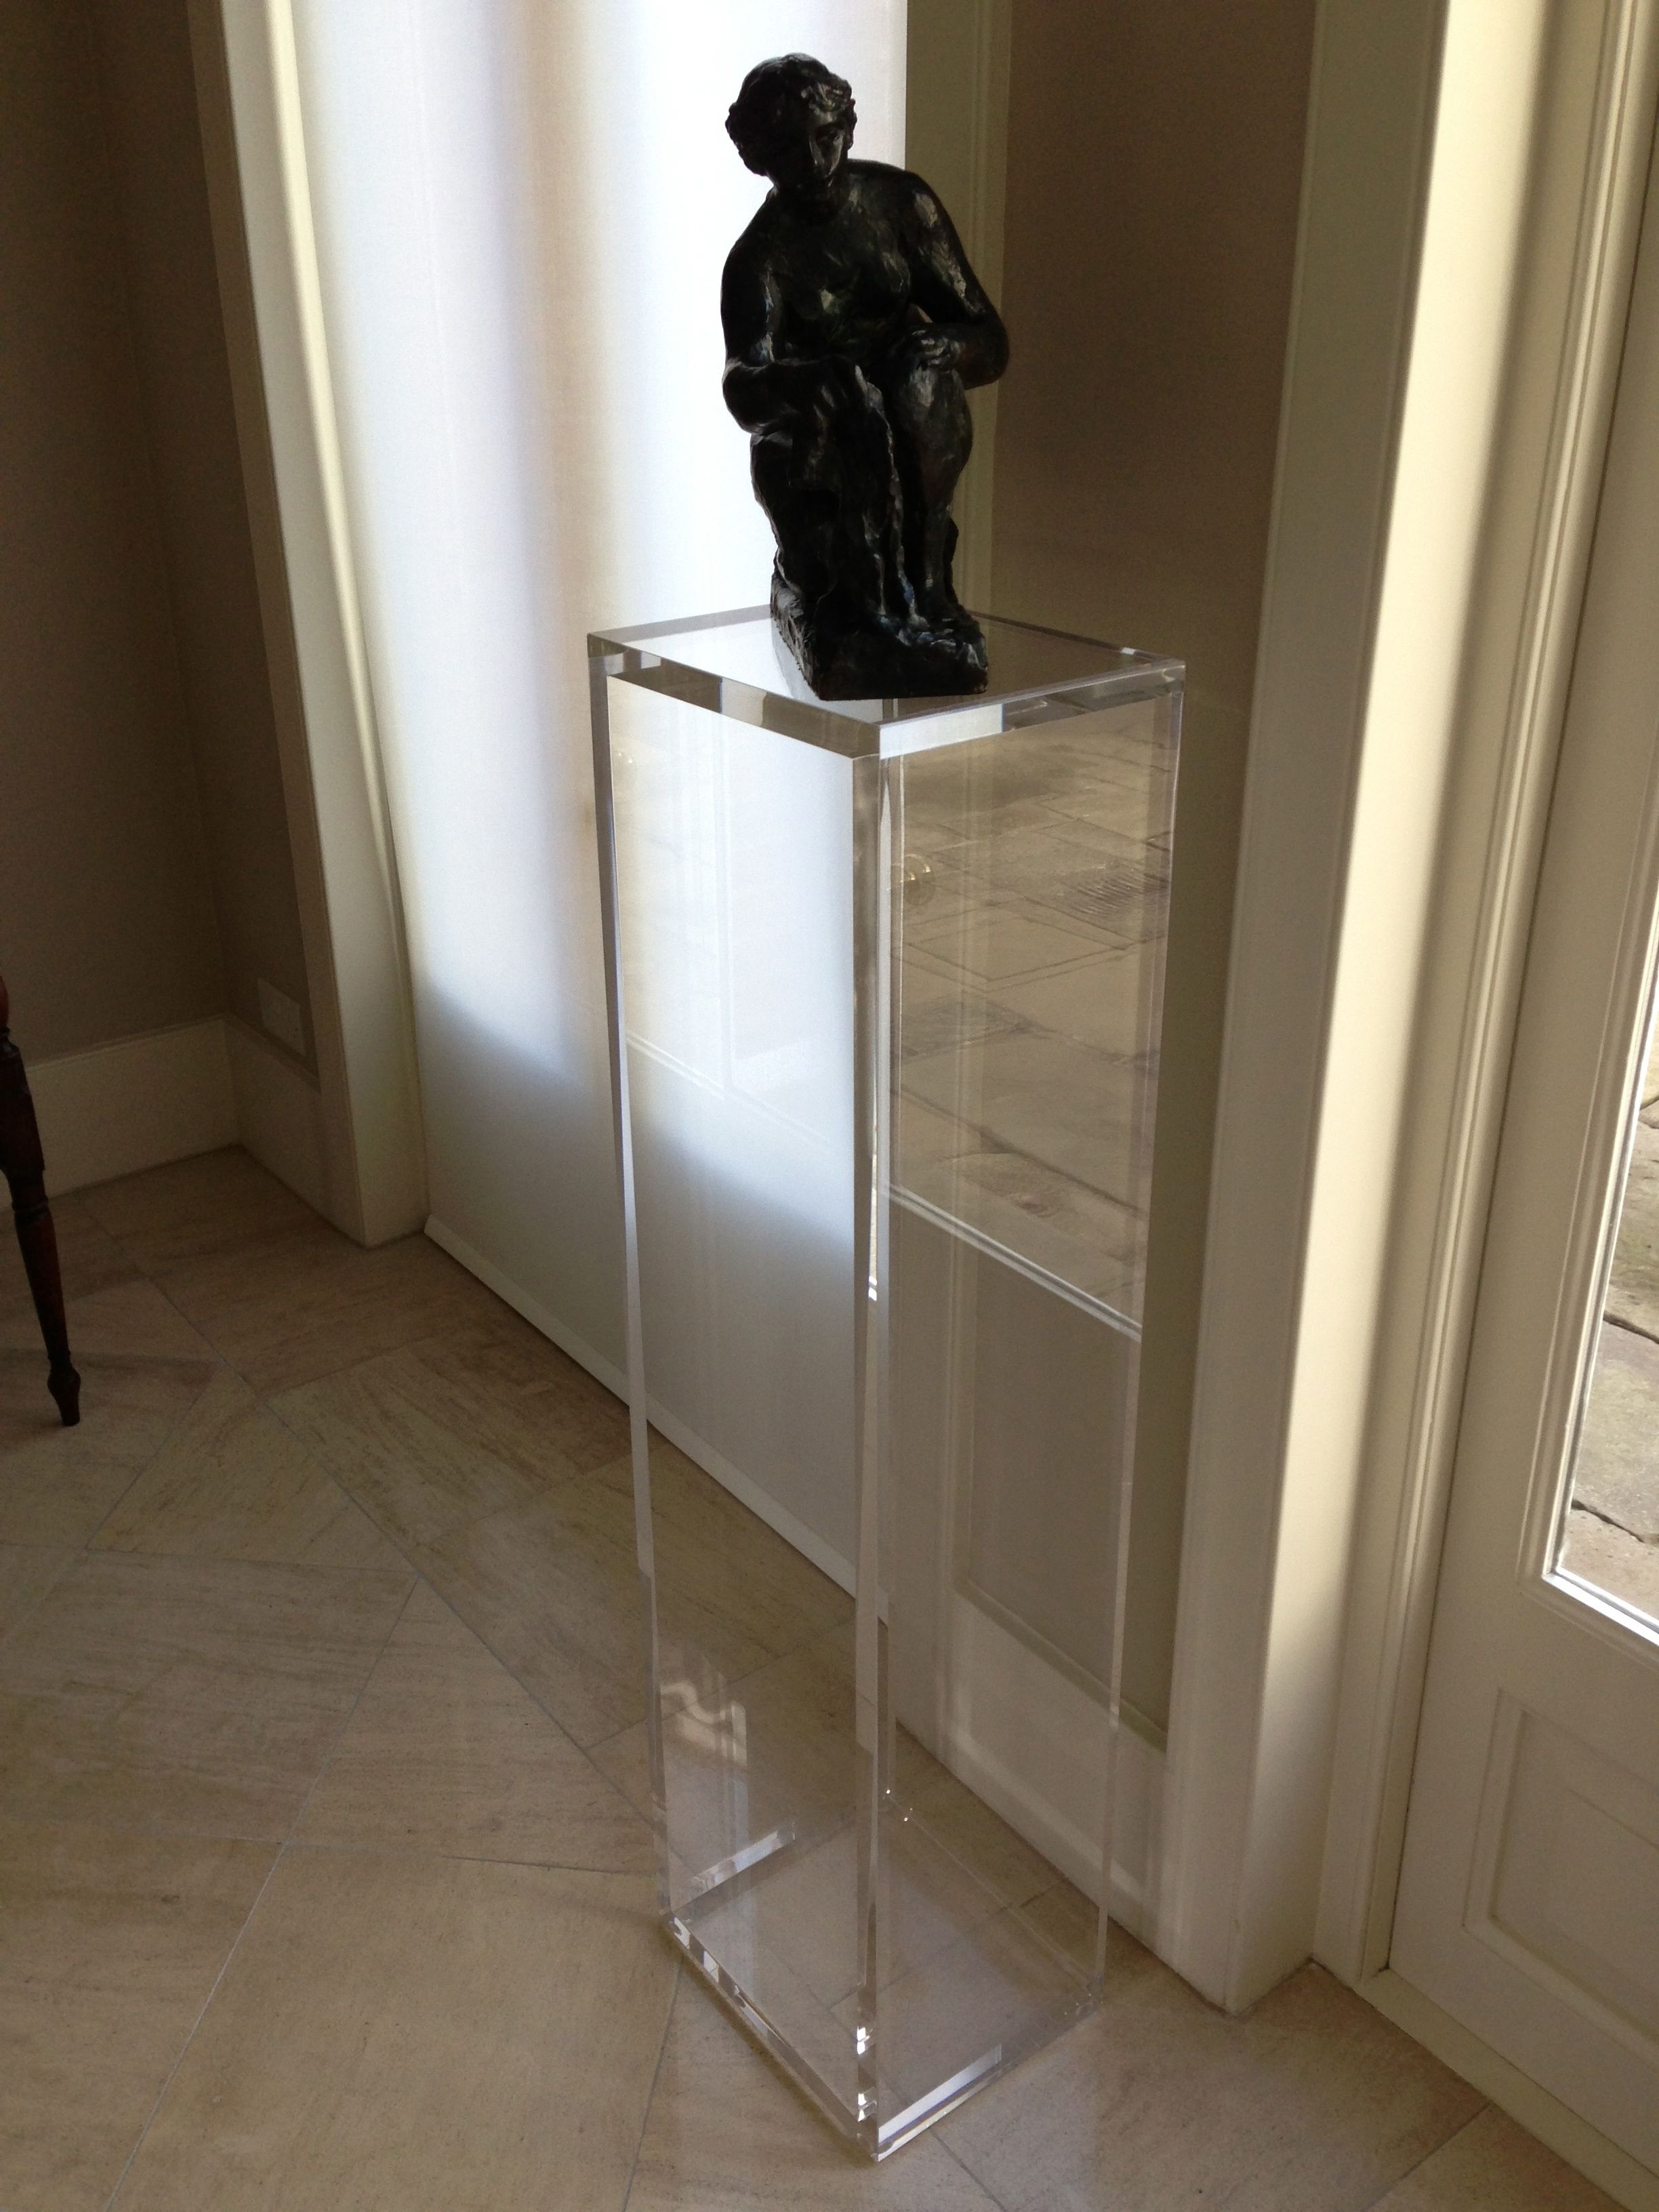 acrylic furniture uk. Carewjones.co.uk Ltd - Acrylic Pedestal Displaying This Wonderful Bronze Sculpture. Made To Measure. Furniture Uk O